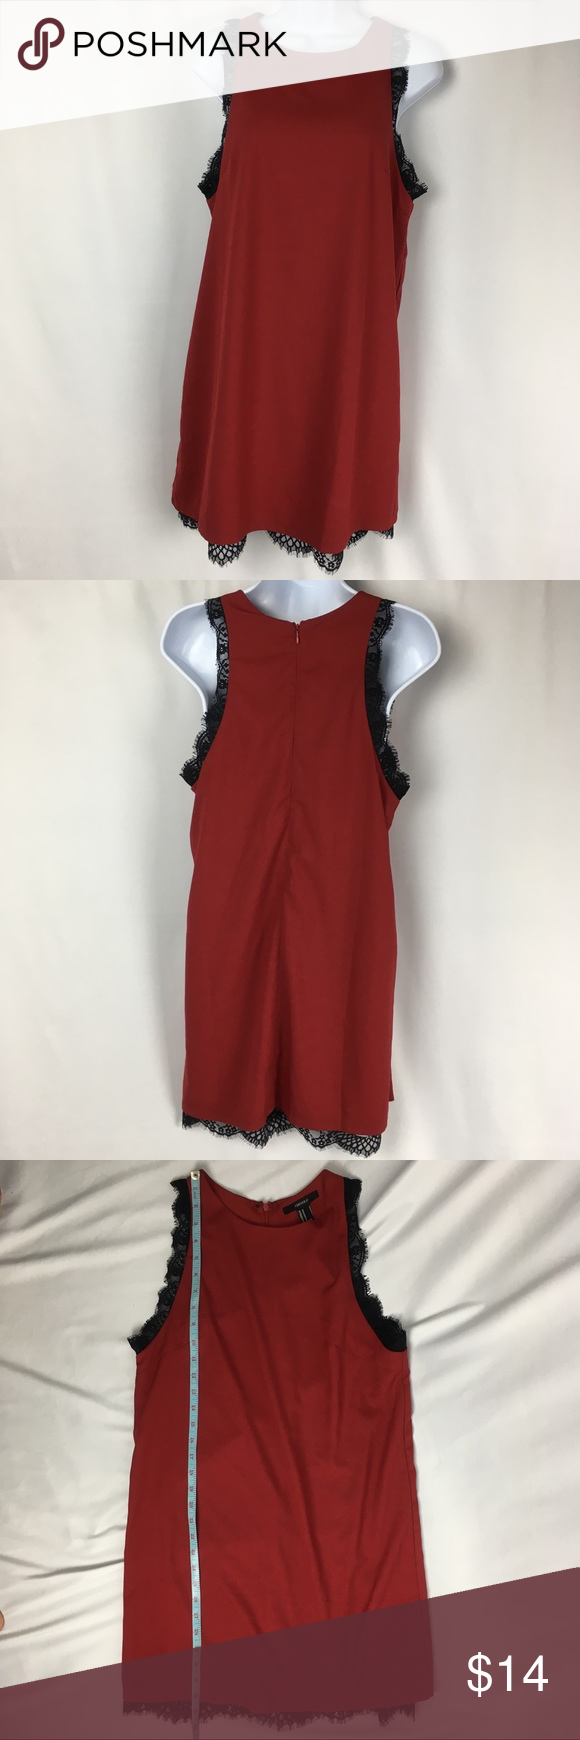 Nwt forever red dress with black lace trim nwt forever red